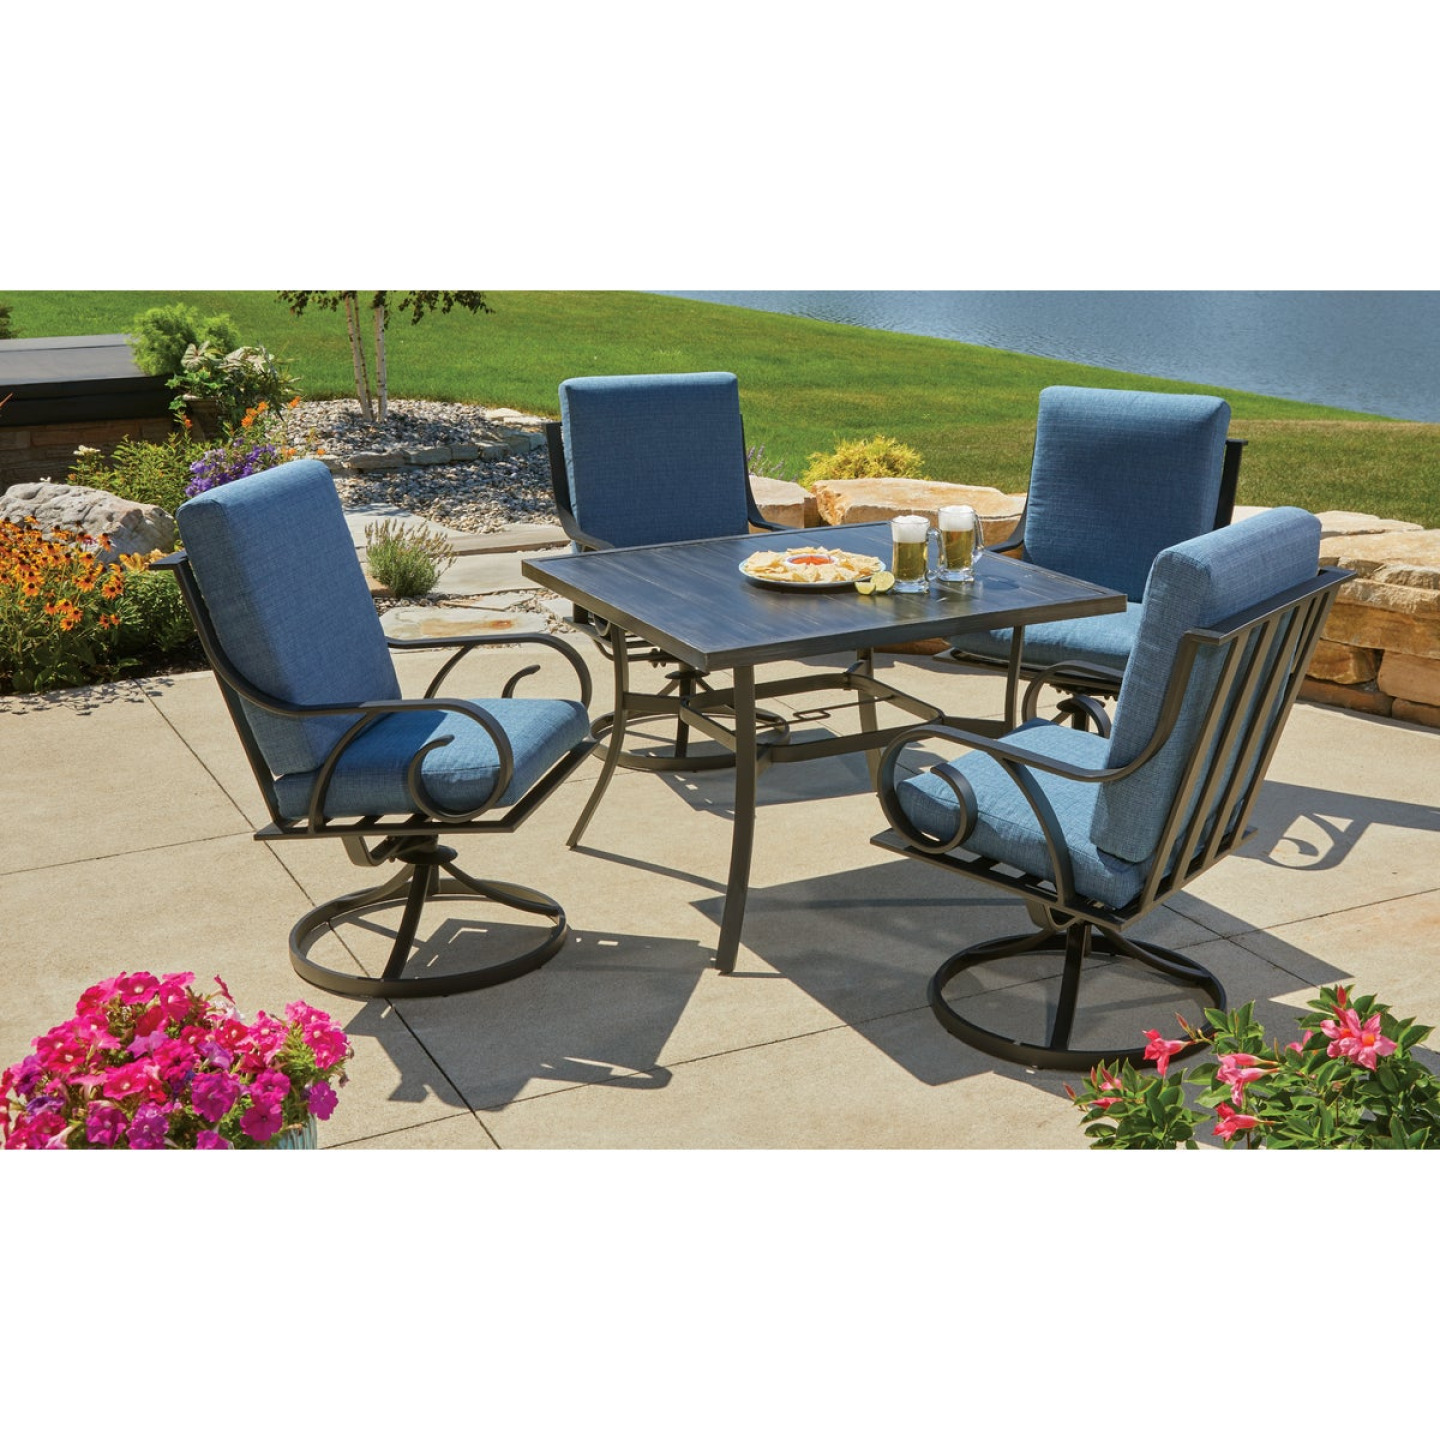 Pacific Casual Capri 5-Piece Fully Cushioned Swivel Dining Set Image 3